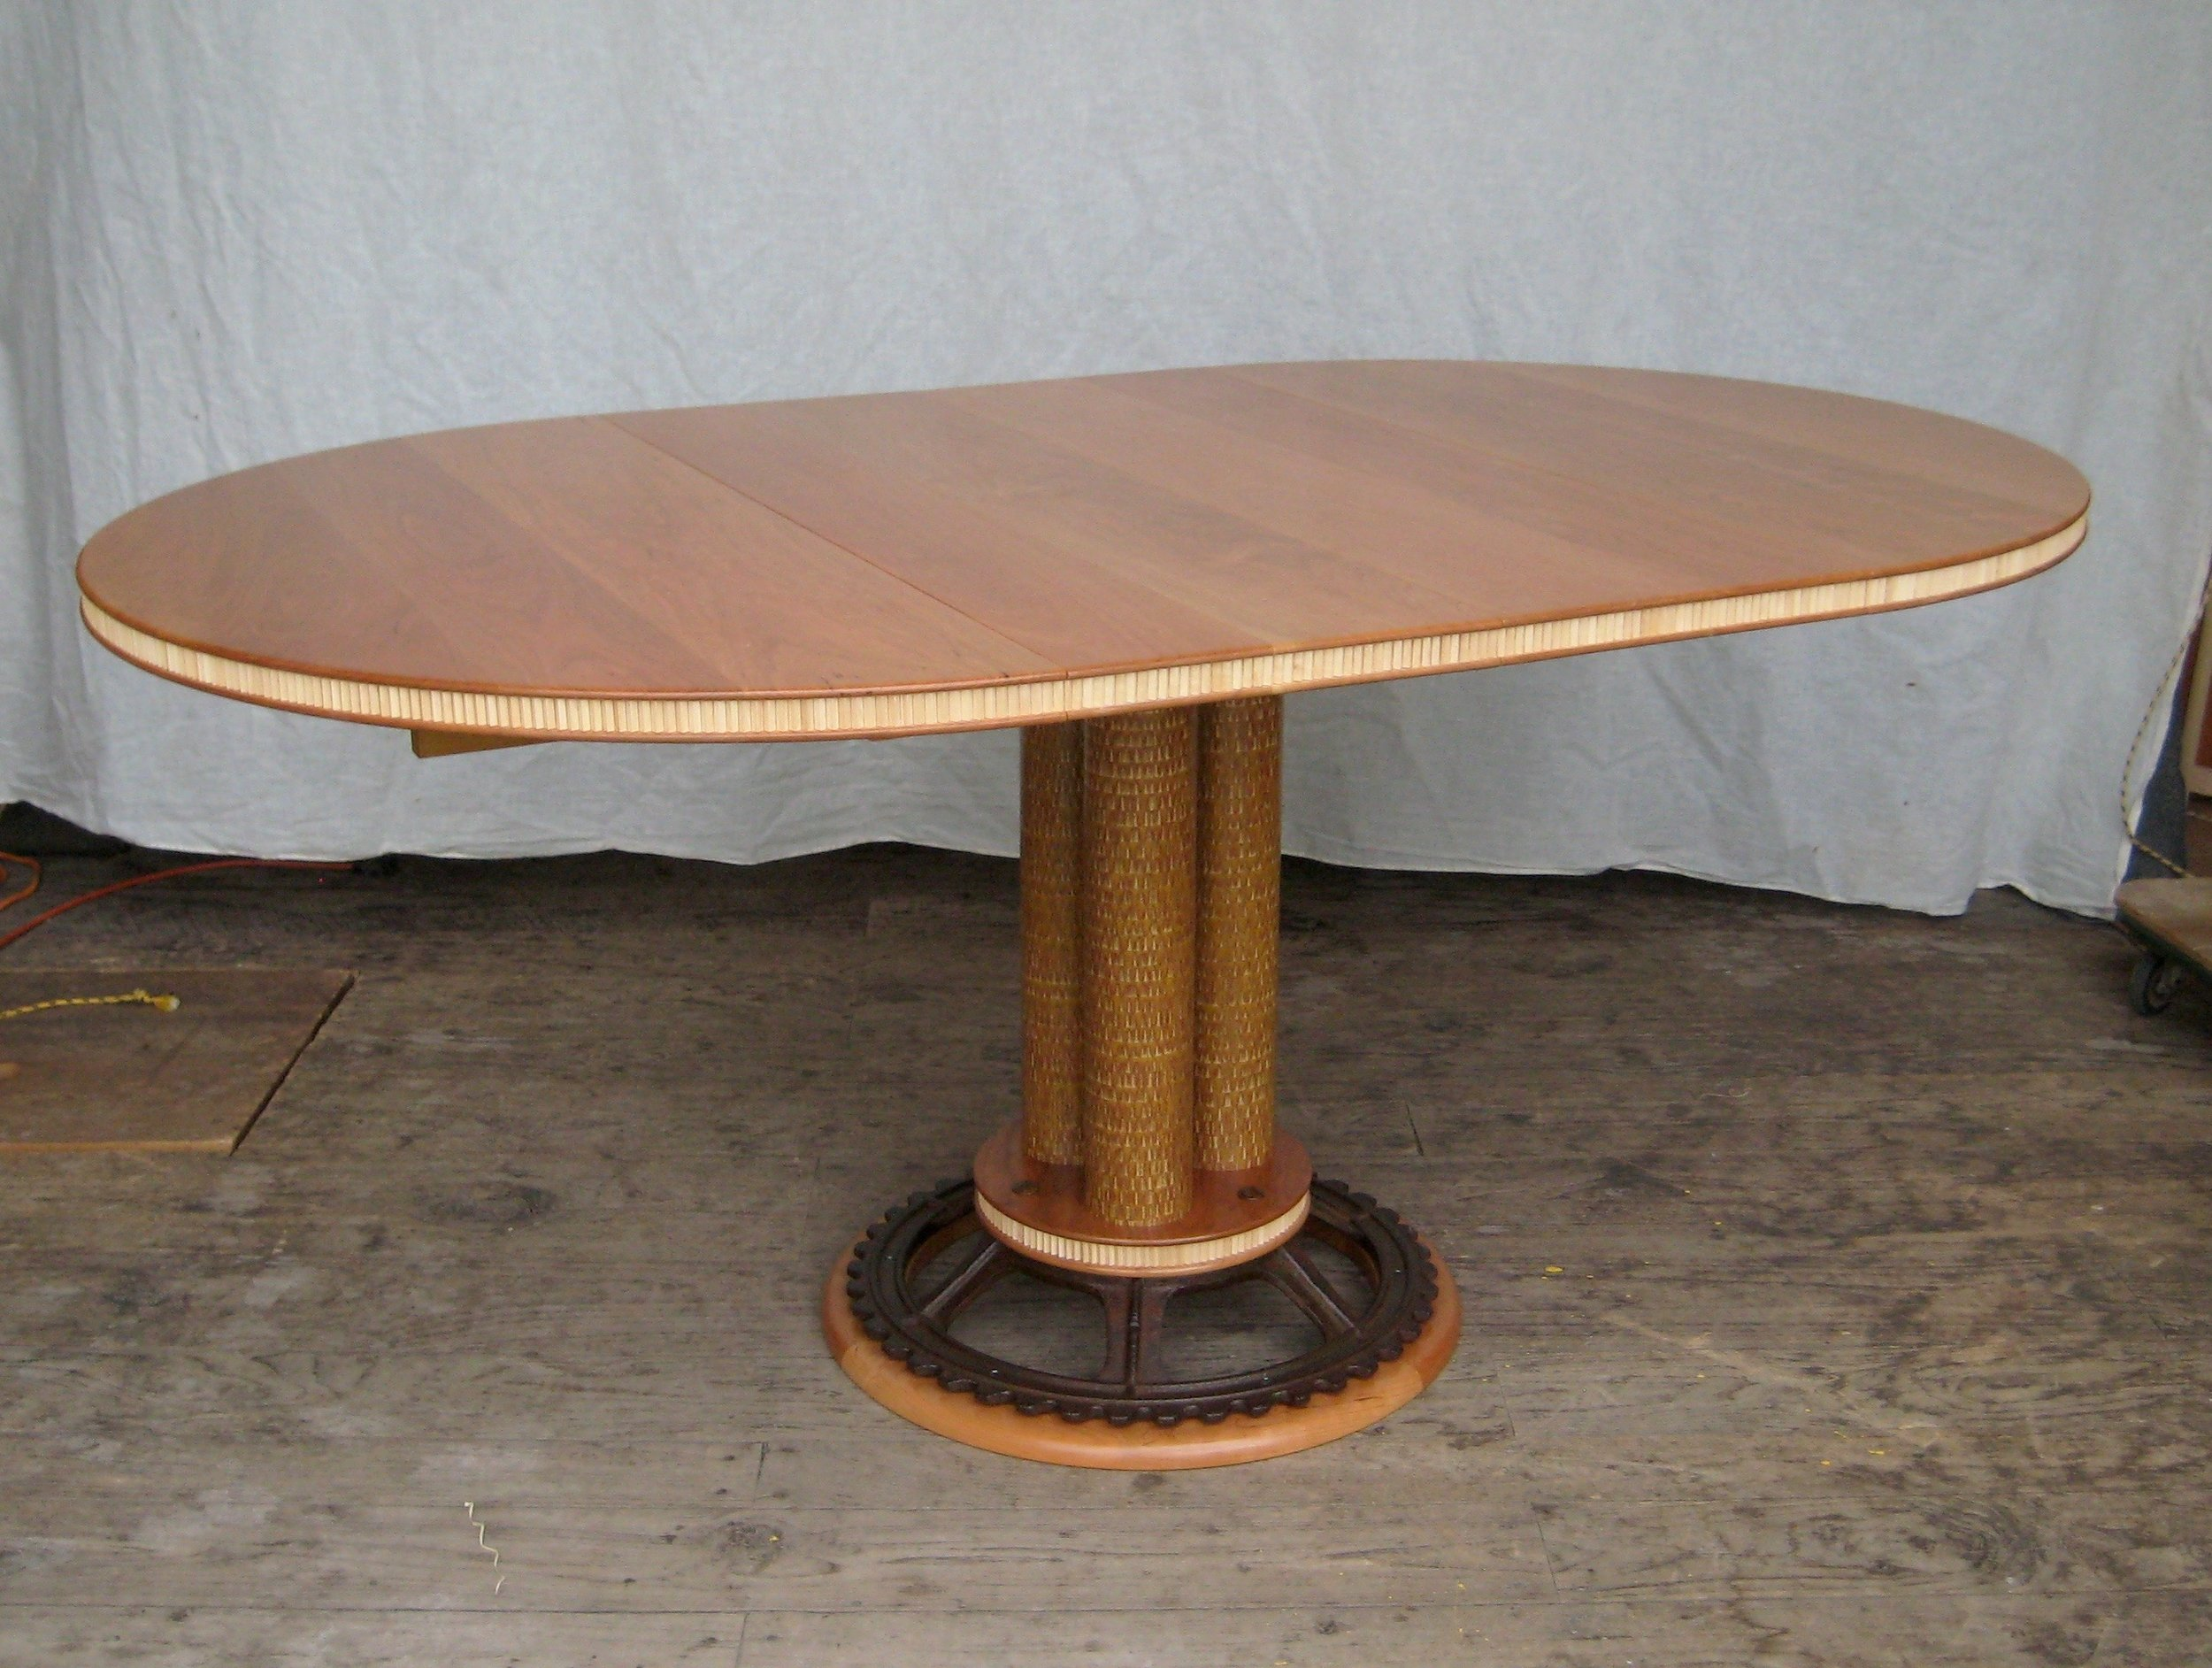 extension-table-schwartzman-003.jpg